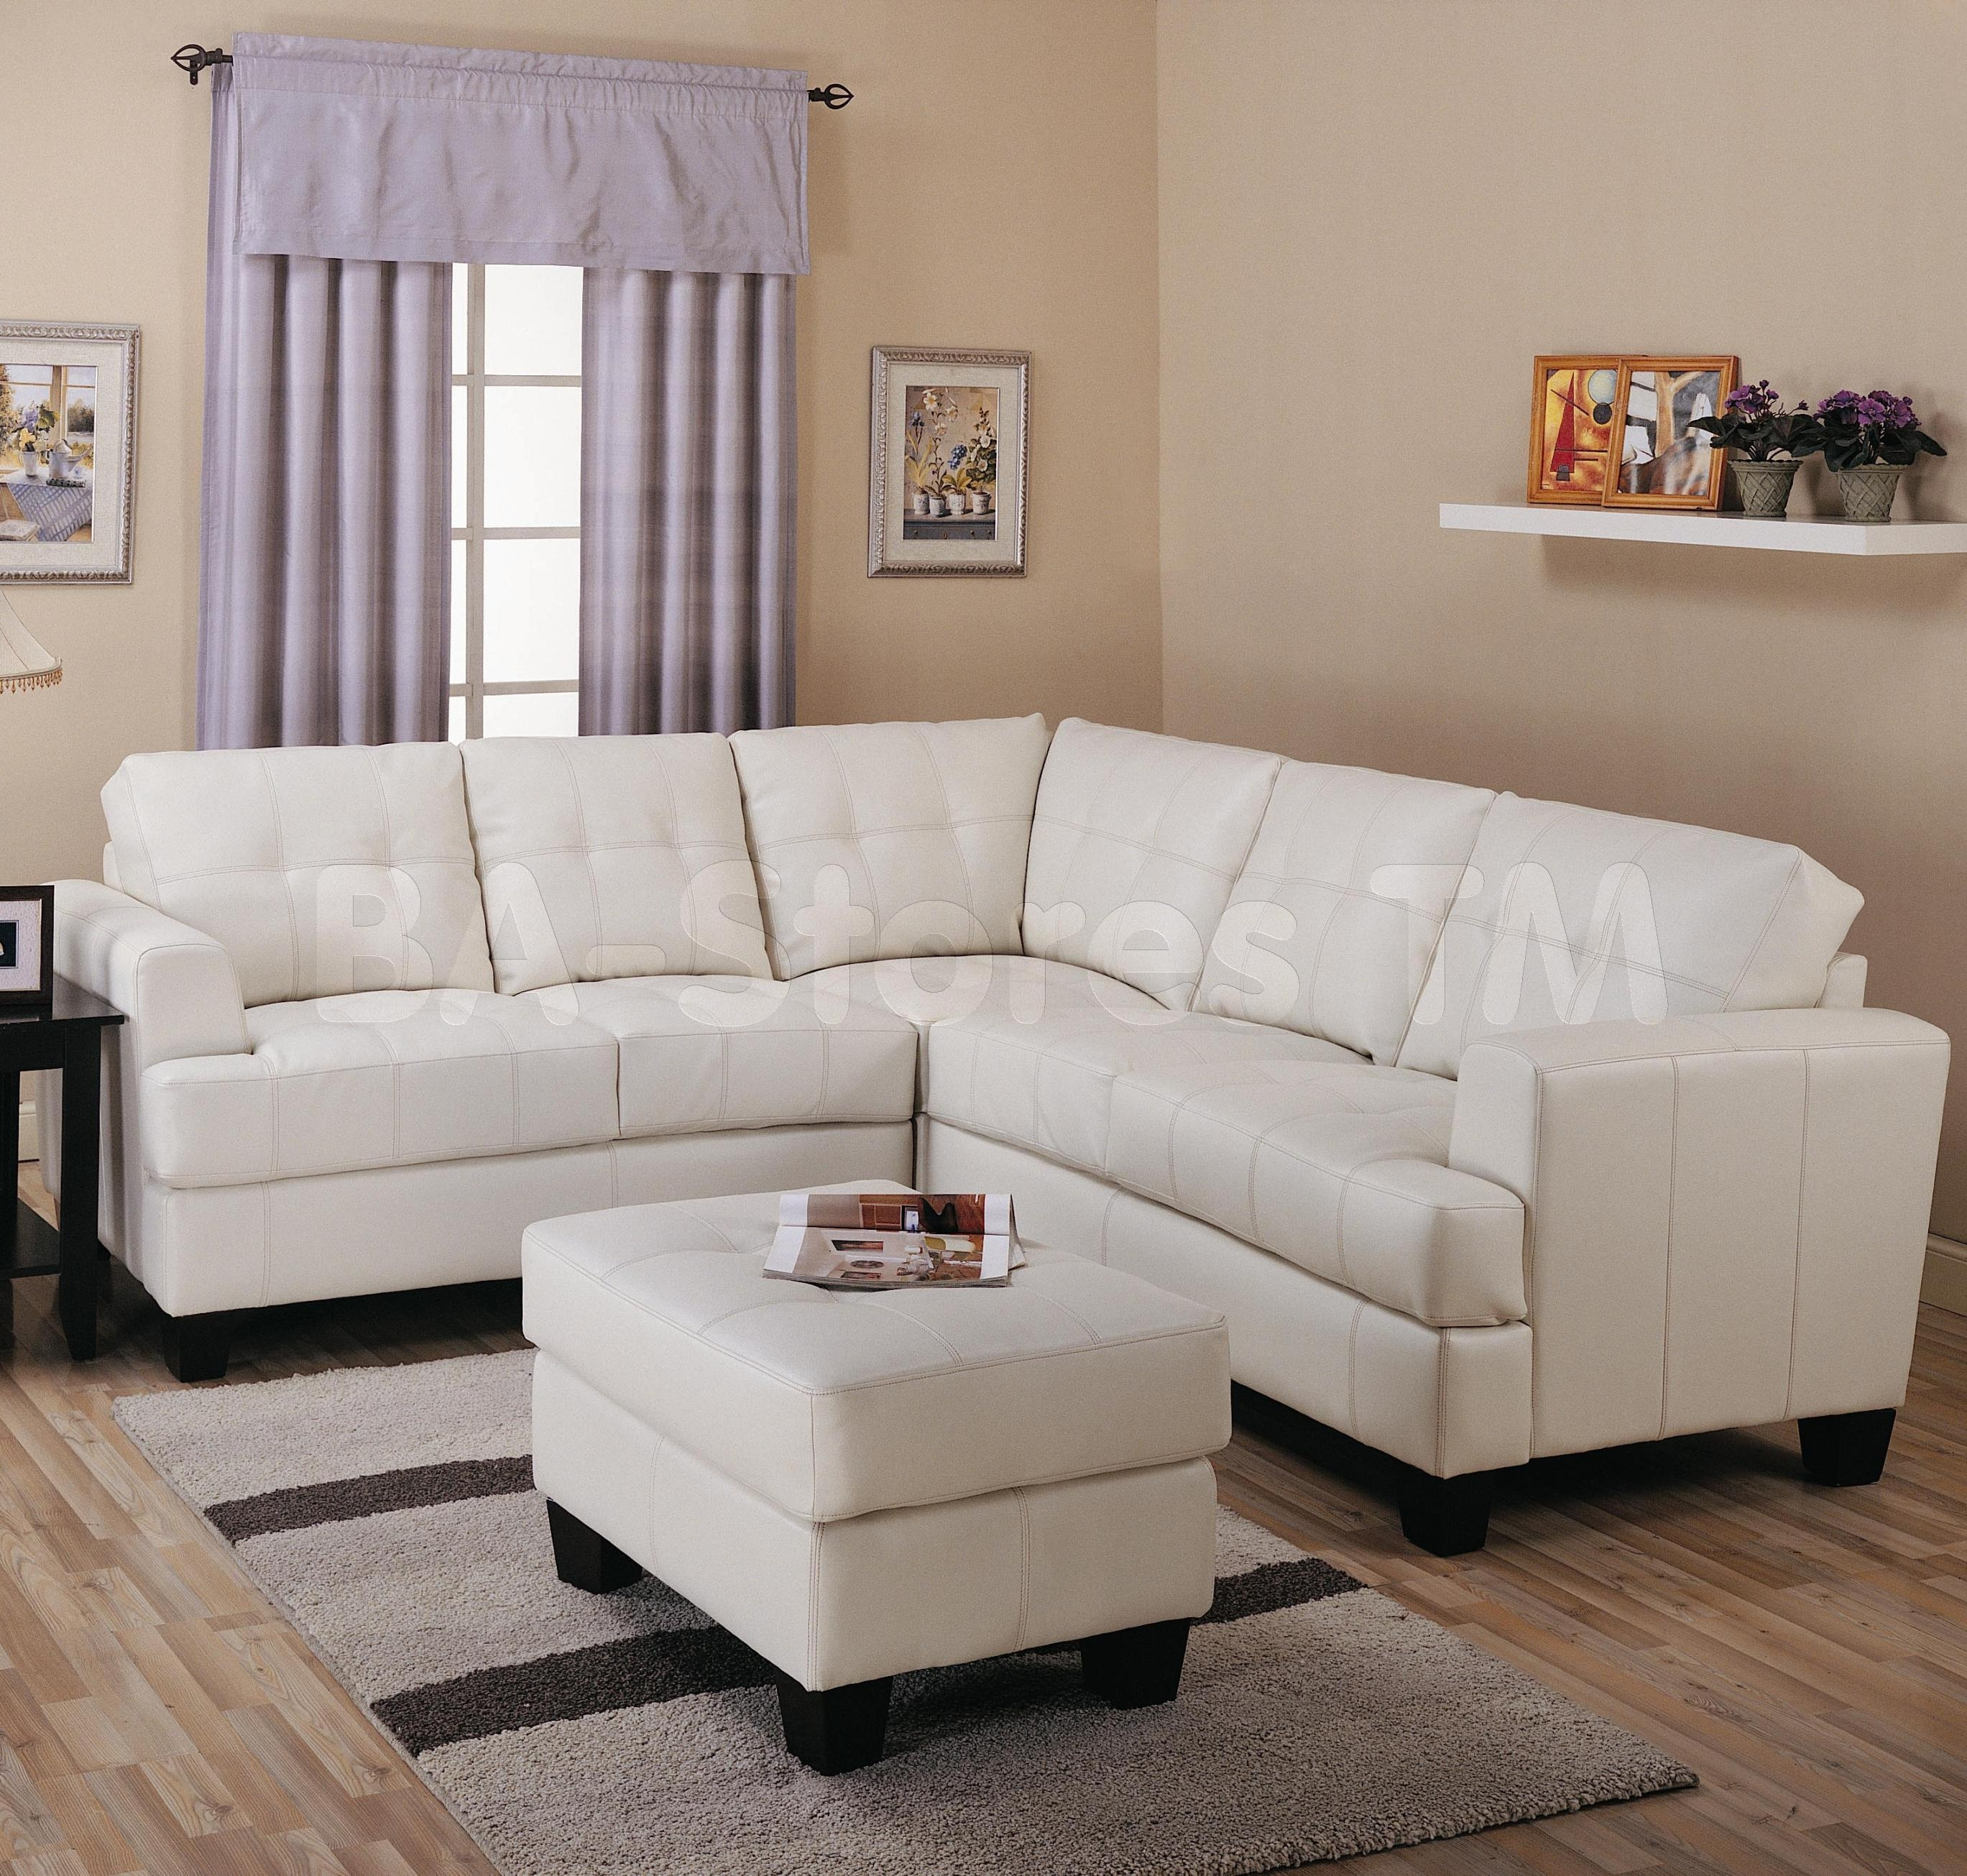 Furniture : Sectional Sofa $500 Recliner With Lift Corner Couch pertaining to Jamaica Sectional Sofas (Image 1 of 10)